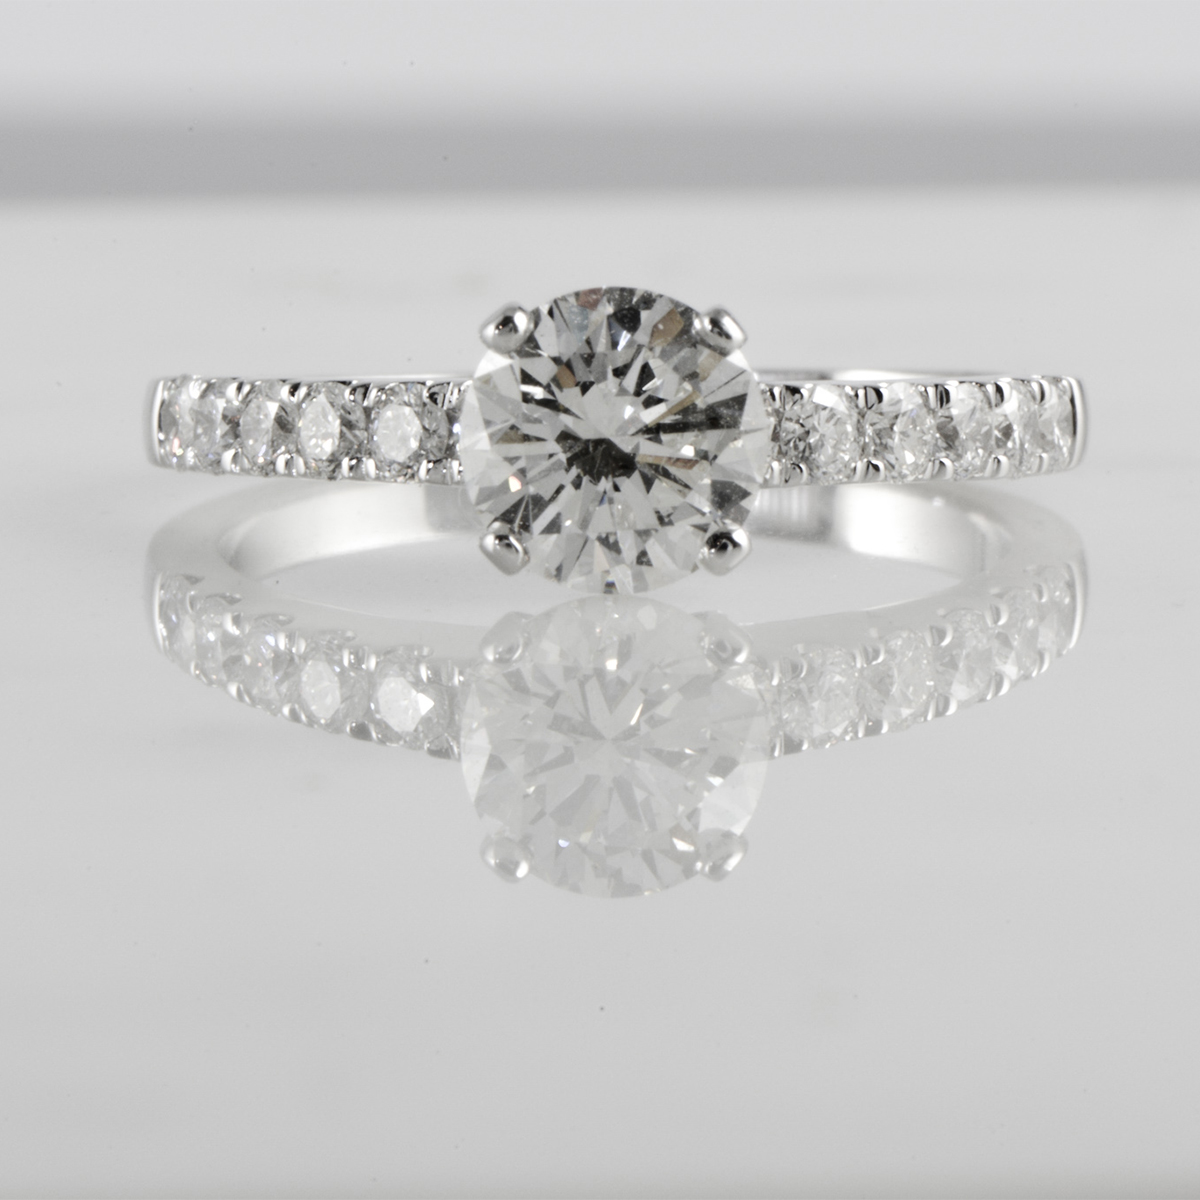 https://milldiamonds.com/wp-content/uploads/2020/05/1200x1200px-bunte-1witgoud-huiscollectie-solitair-met-diamant.jpeg